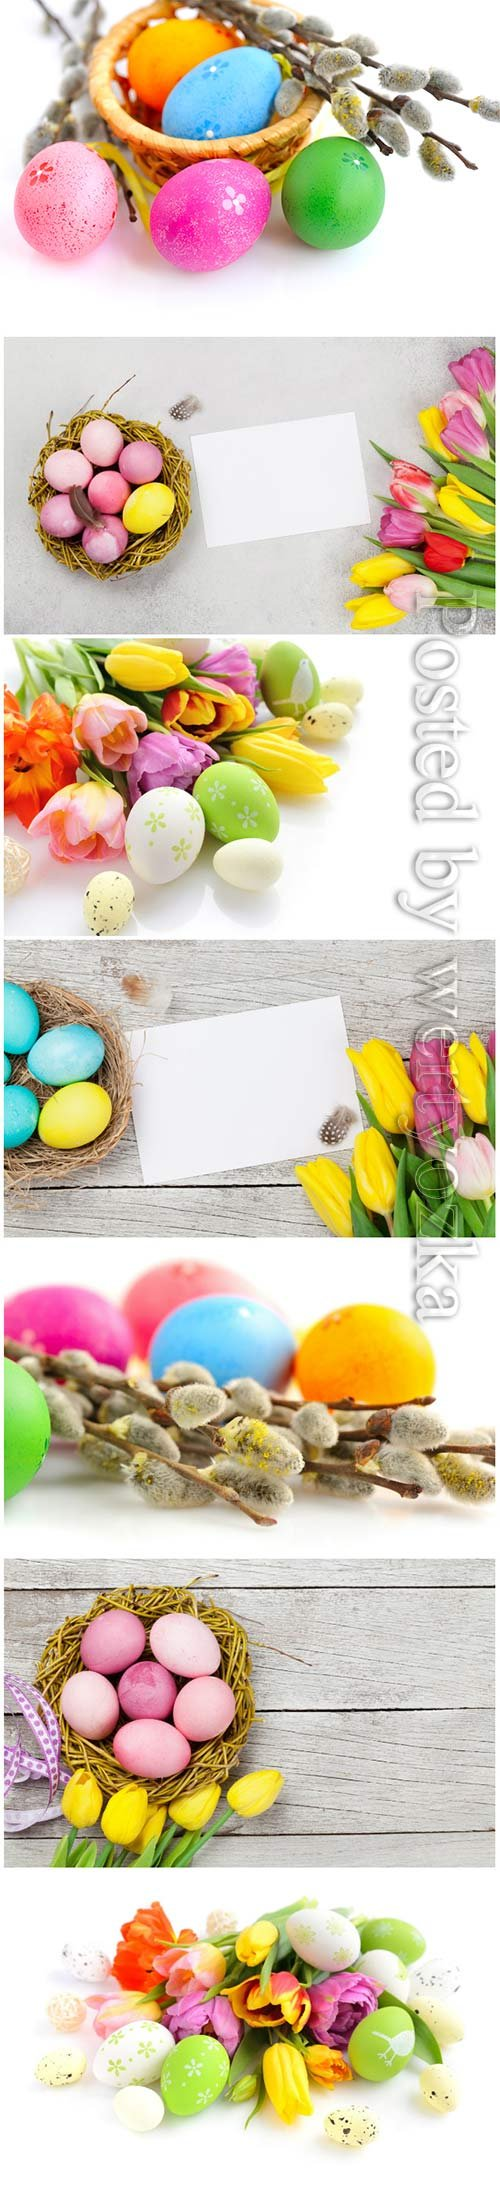 Happy Easter stock photo, Easter eggs, spring flowers # 8